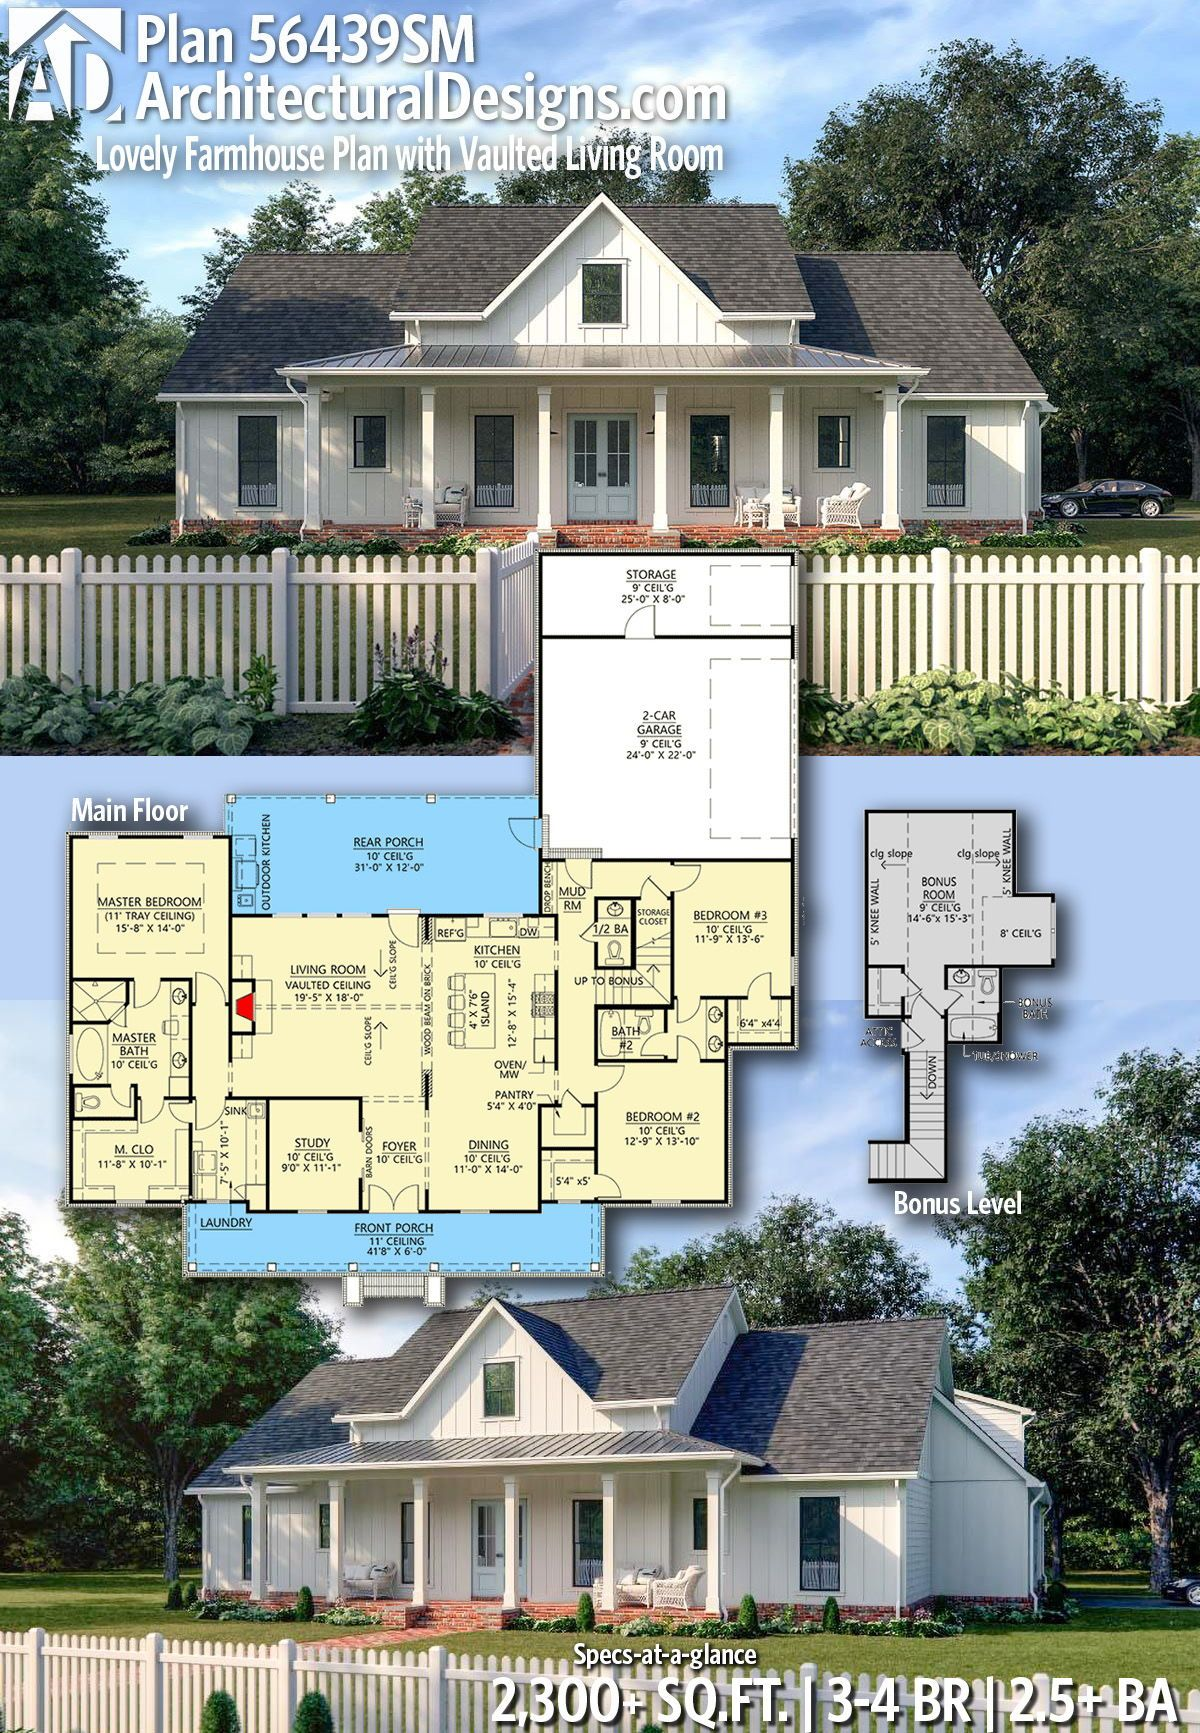 Plan 56439SM Lovely Farmhouse Plan with Vaulted Living